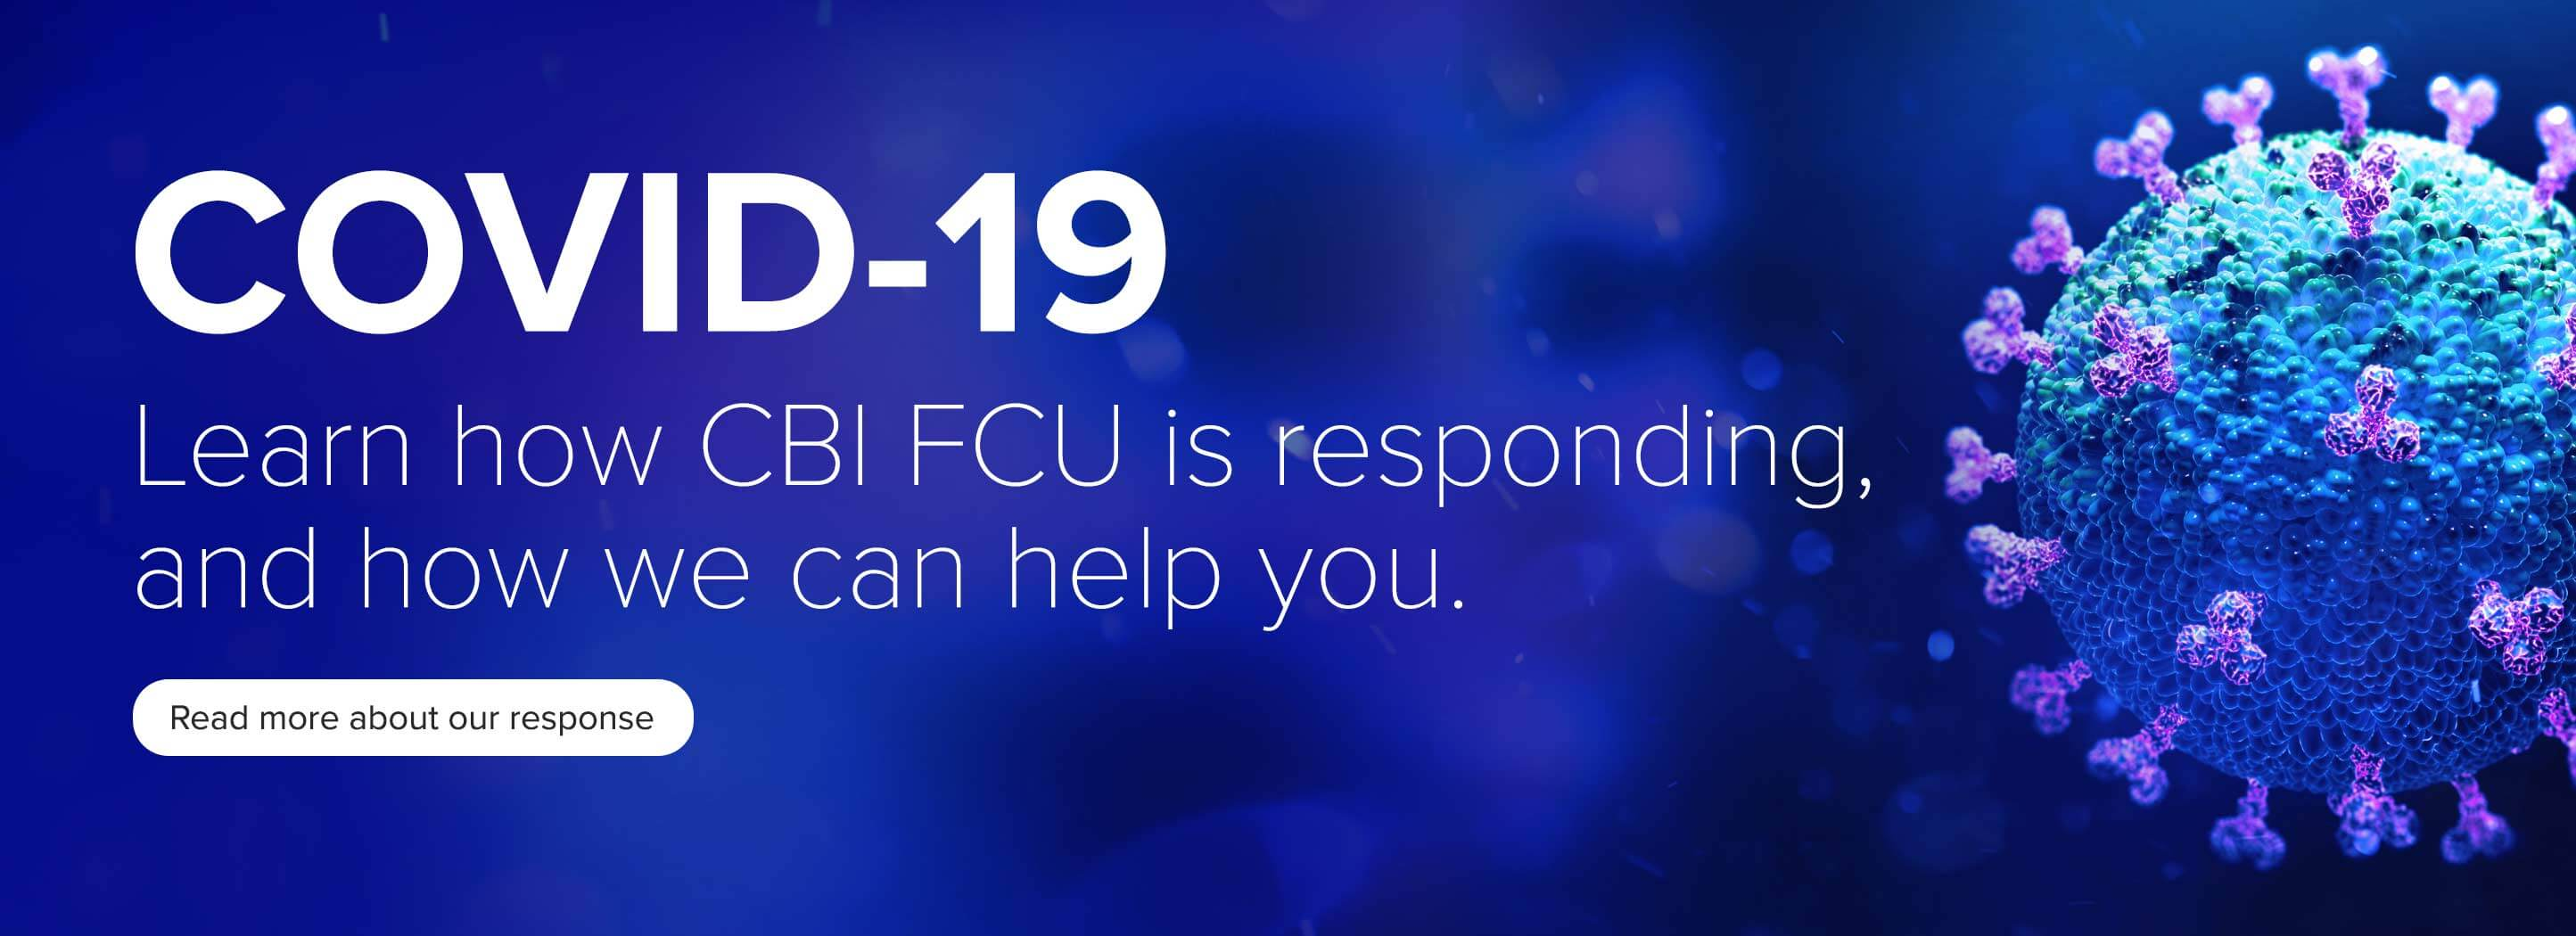 COVID-19 Learn how CBI FCU is responding, and how we can help you